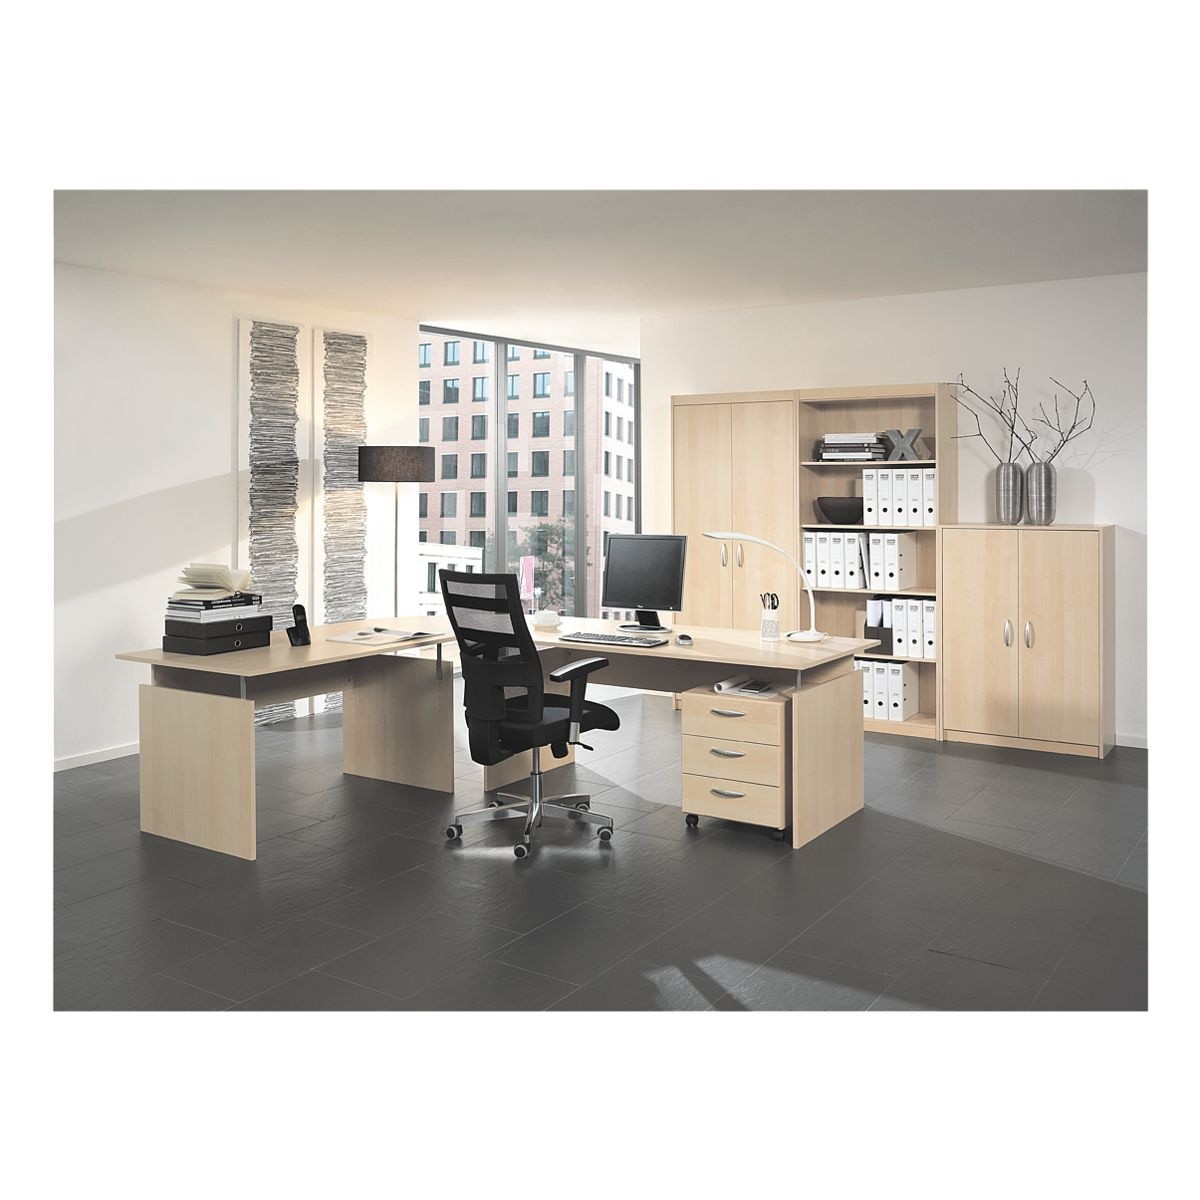 wellem bel m bel set adria 7 teilig schreibtisch mit wangenfu bei otto office g nstig kaufen. Black Bedroom Furniture Sets. Home Design Ideas